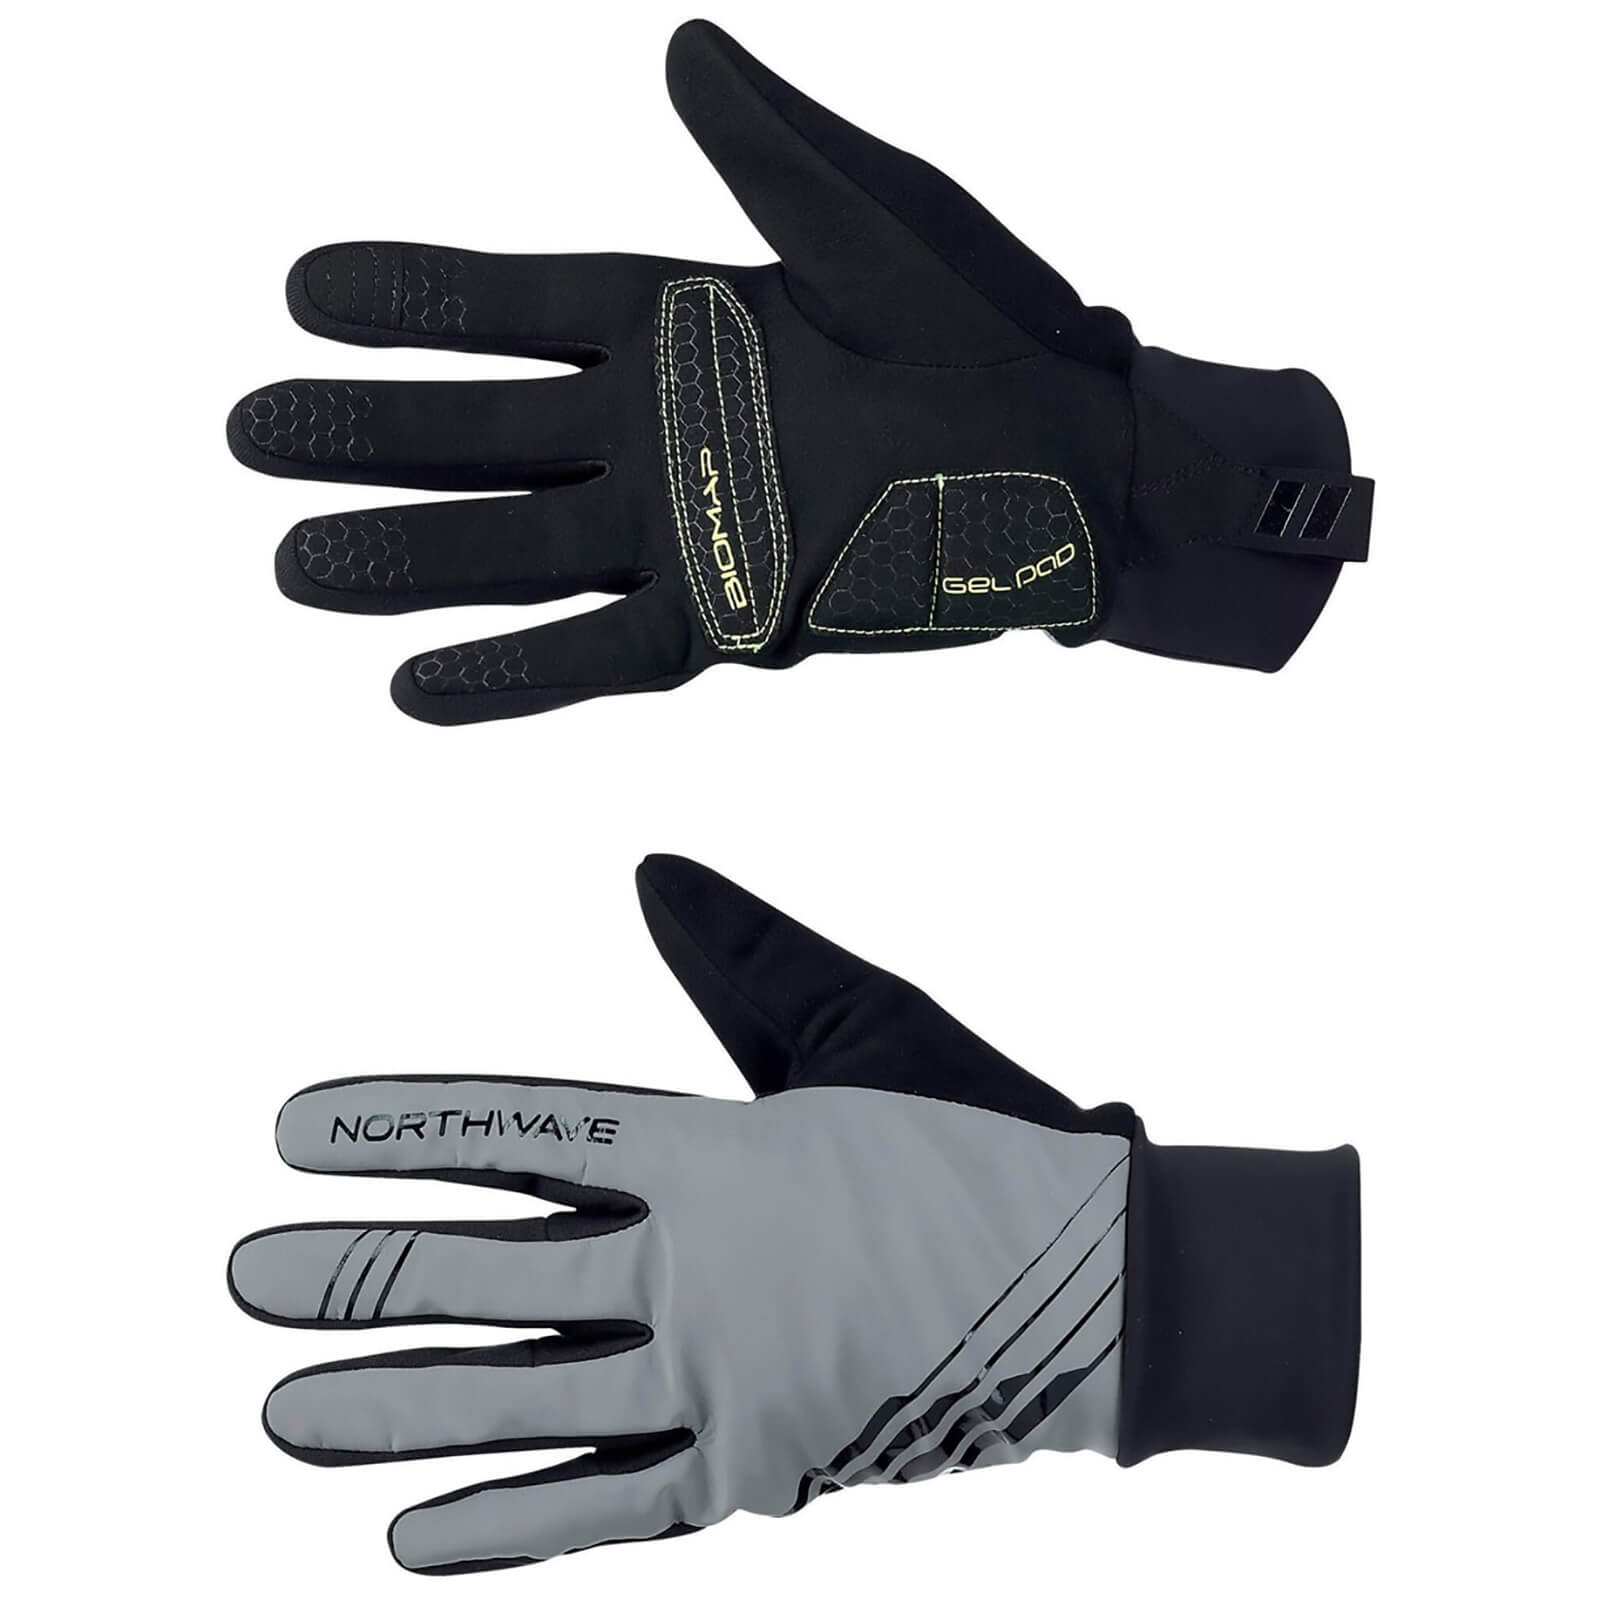 Northwave Power 2 Gel Winter Gloves - Reflective